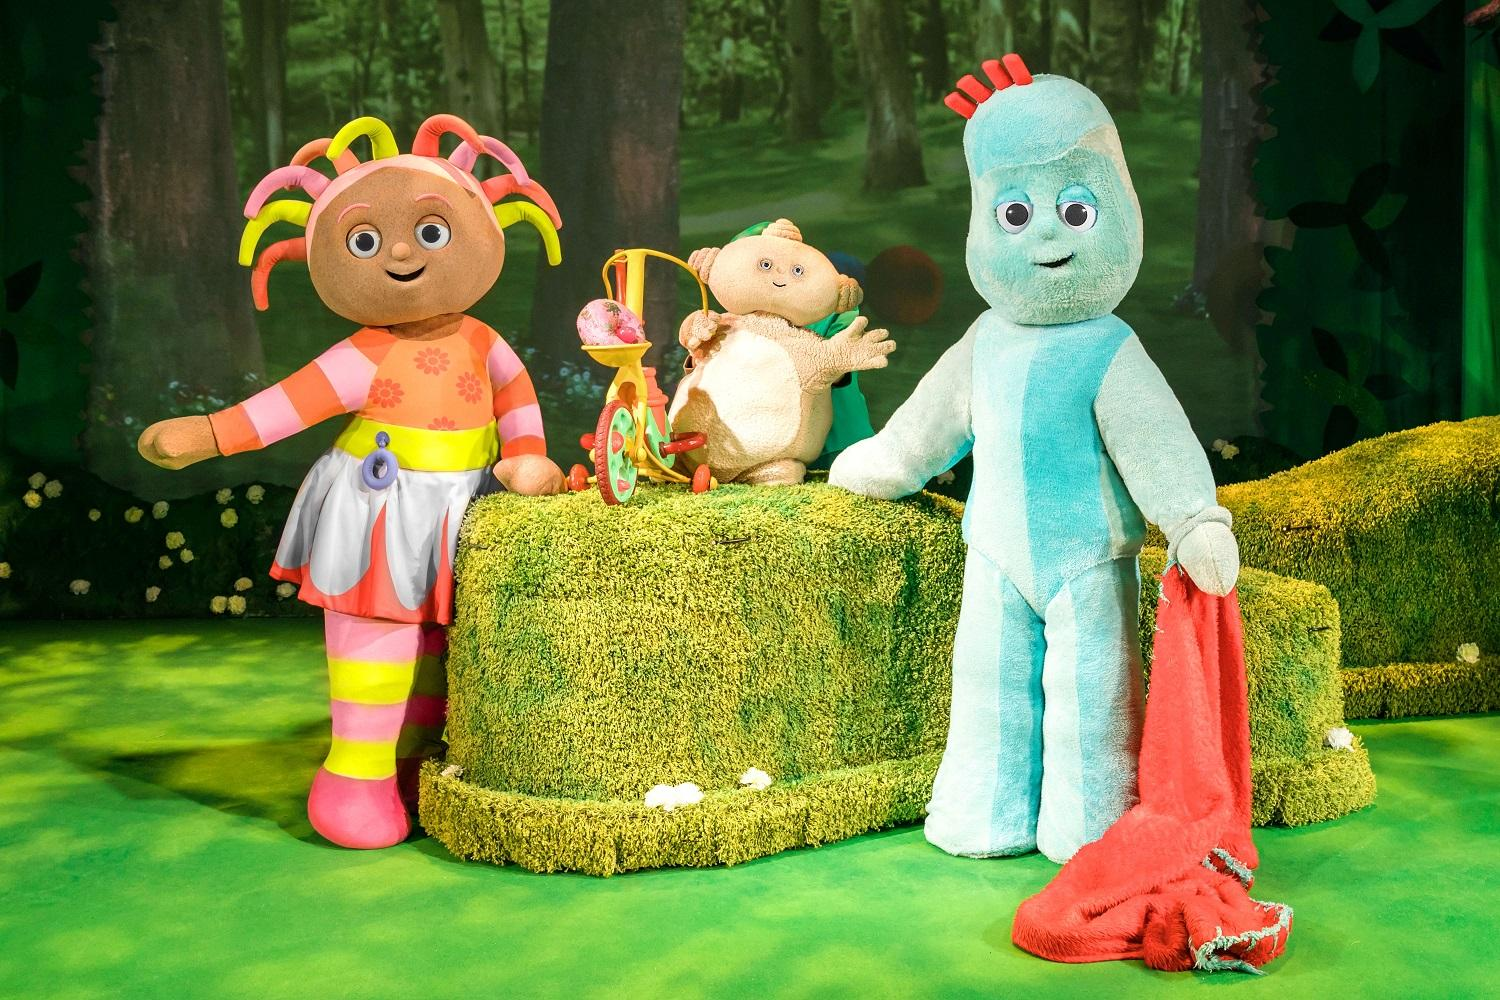 Image of Upsy Daisy, Iggle Piggle and Makka Pakka